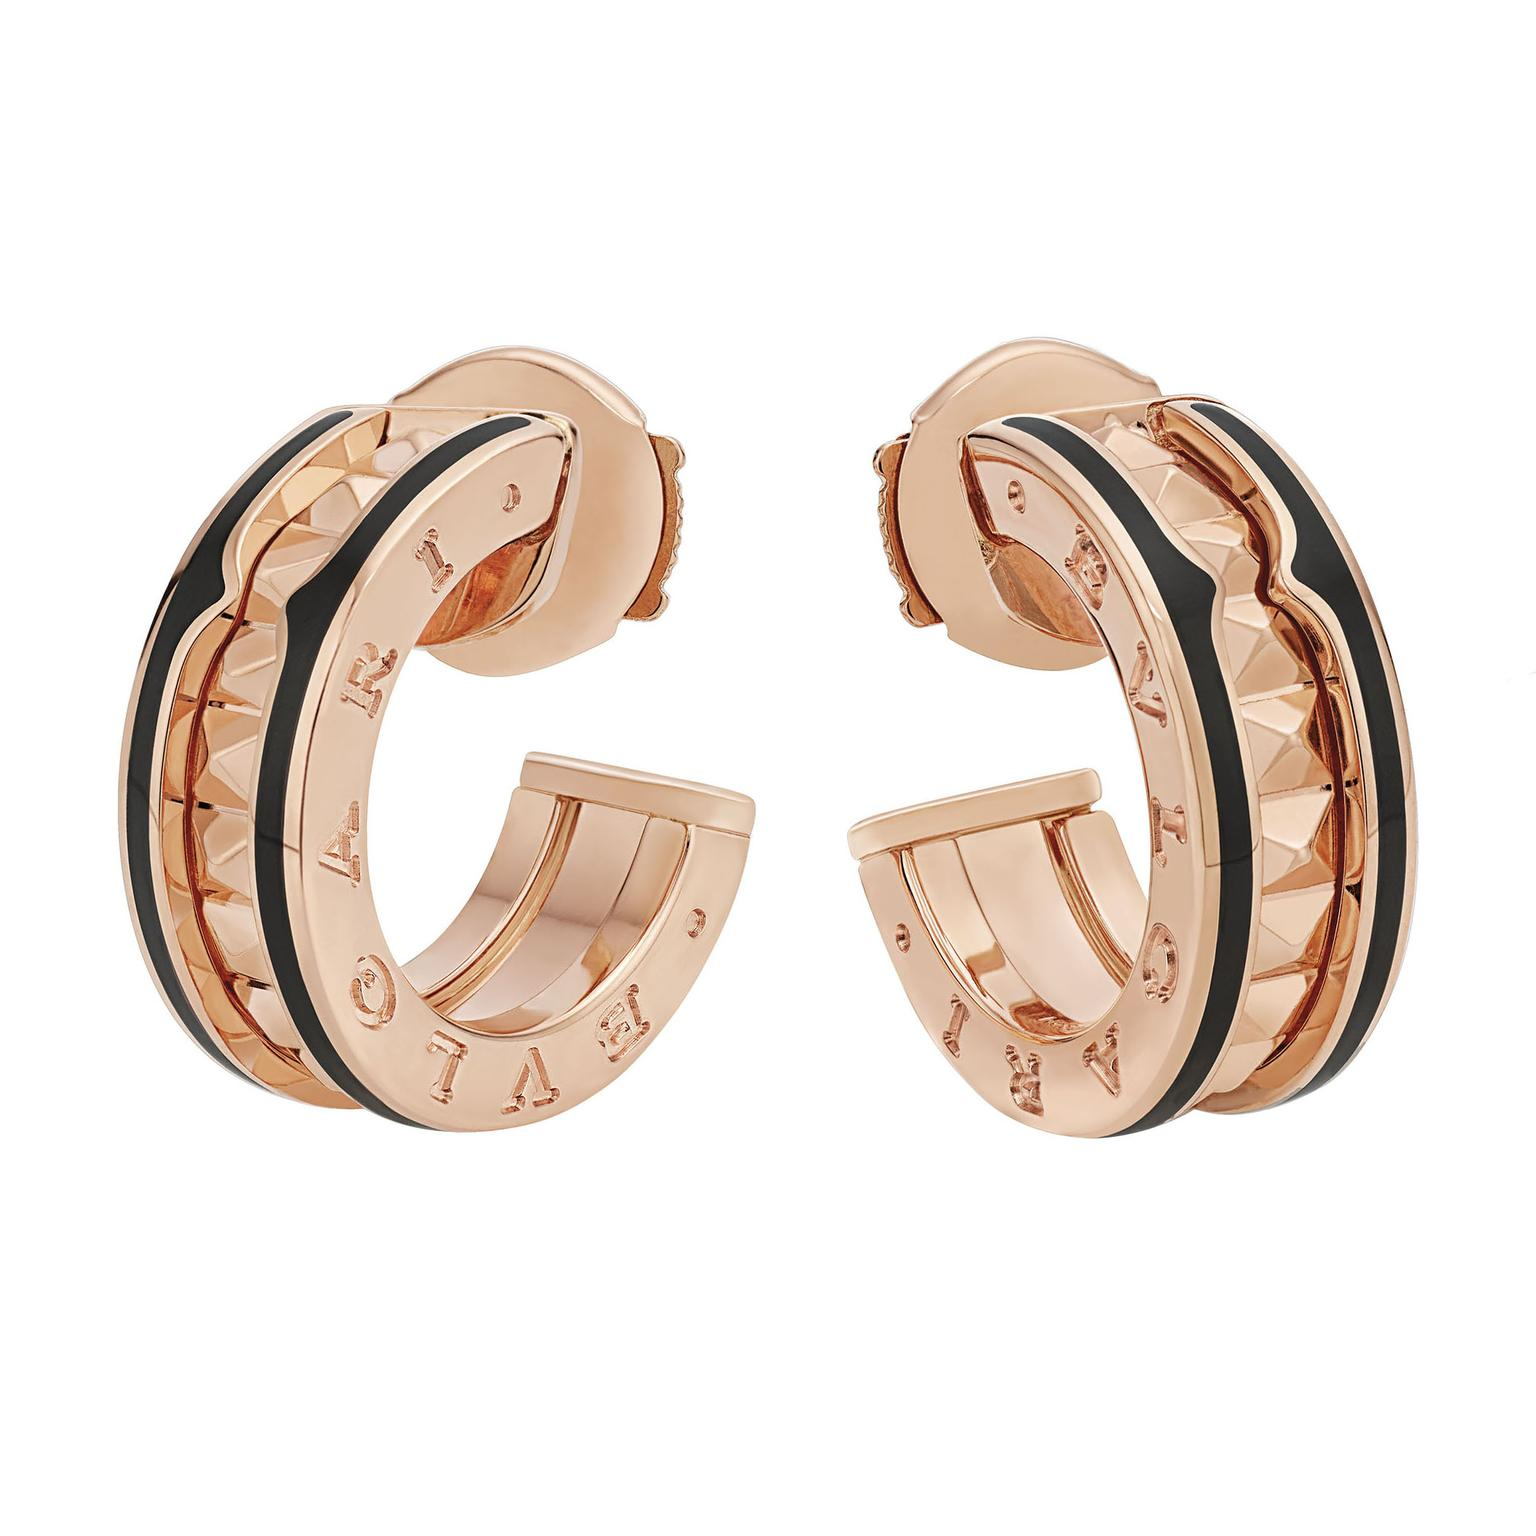 Bulgari BZero1 hoop earrings